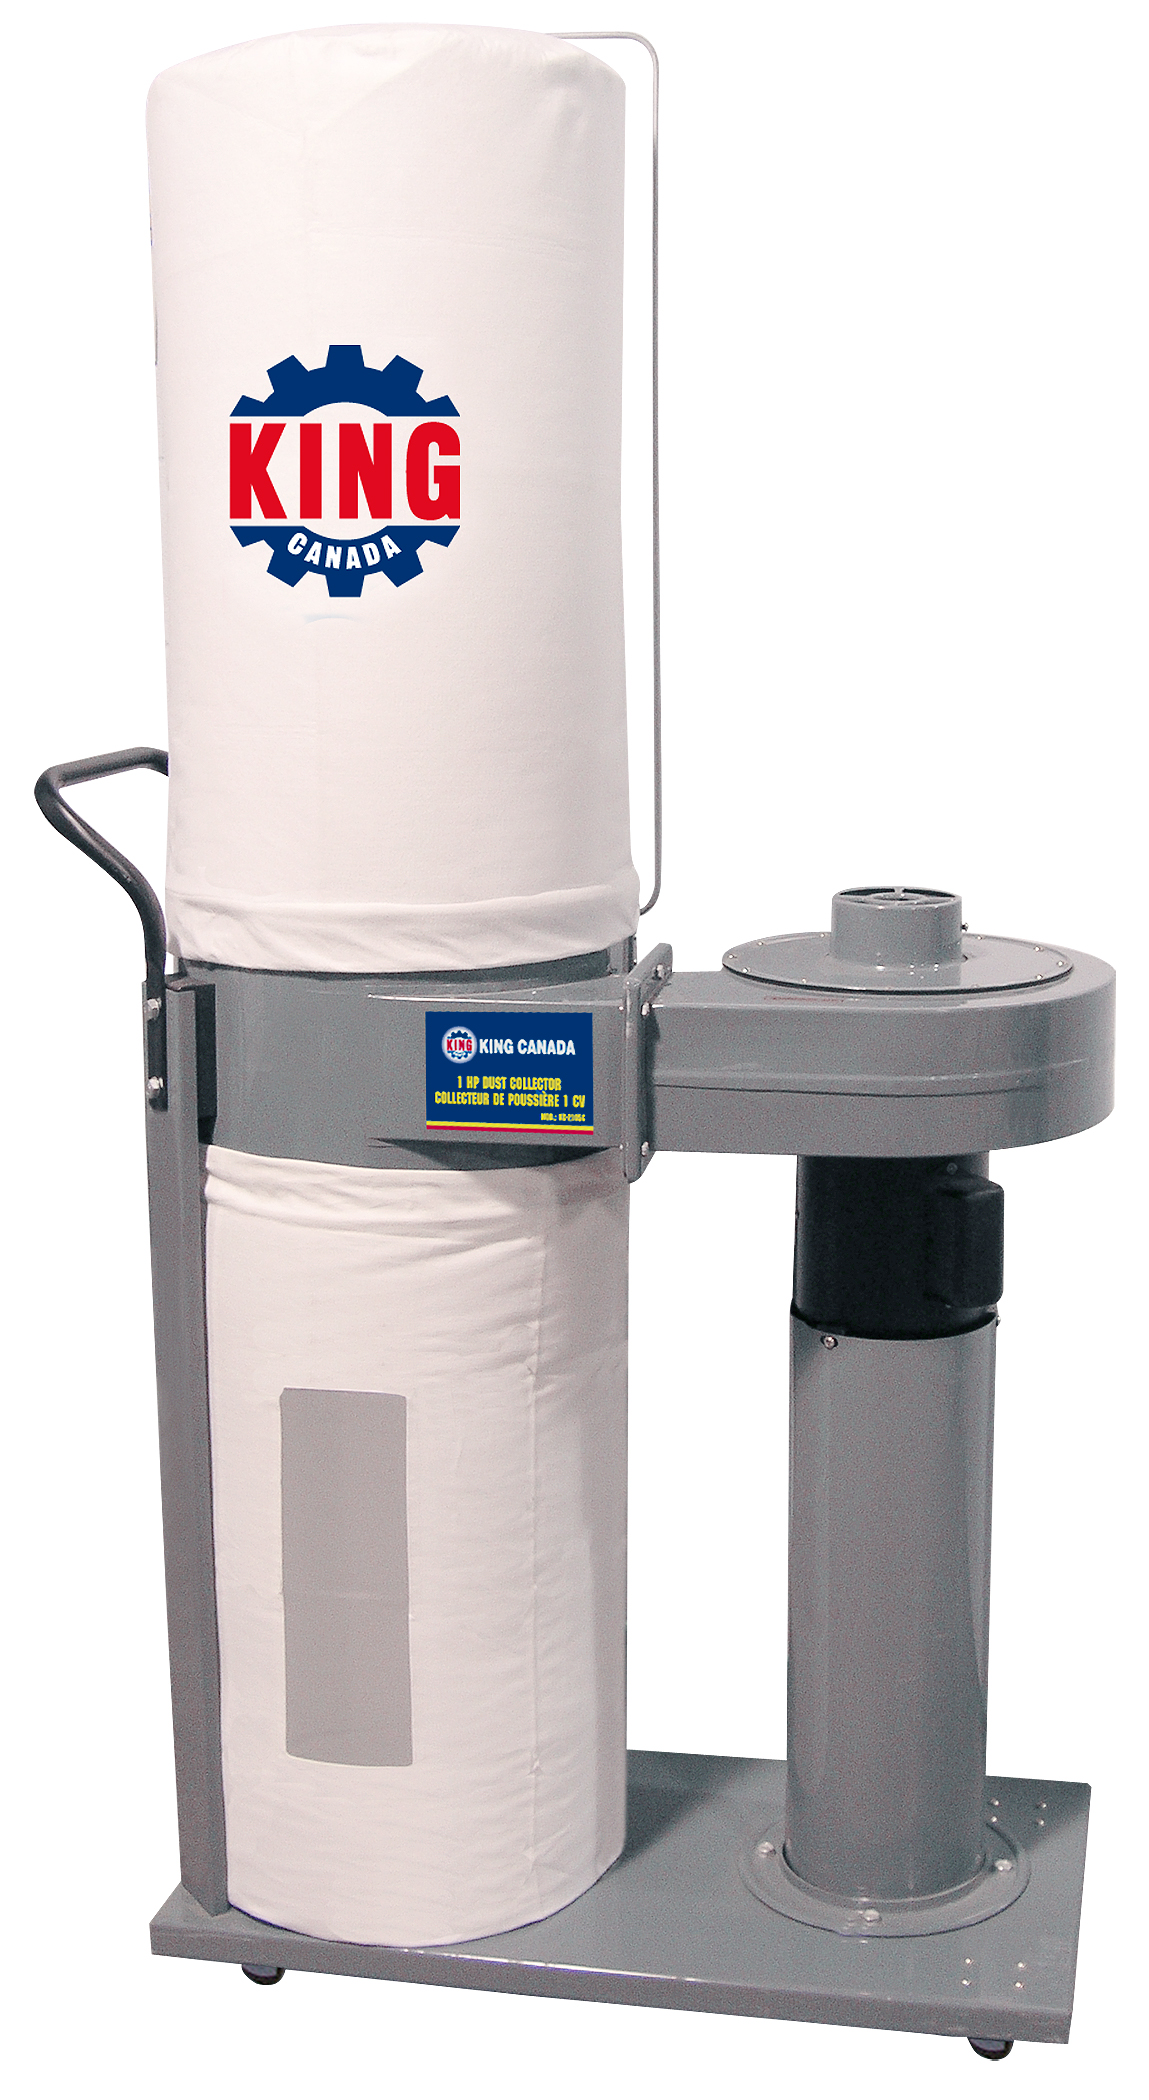 King Canada KC-2105C Dust Collector, 1 HP, 110V, 600CFM